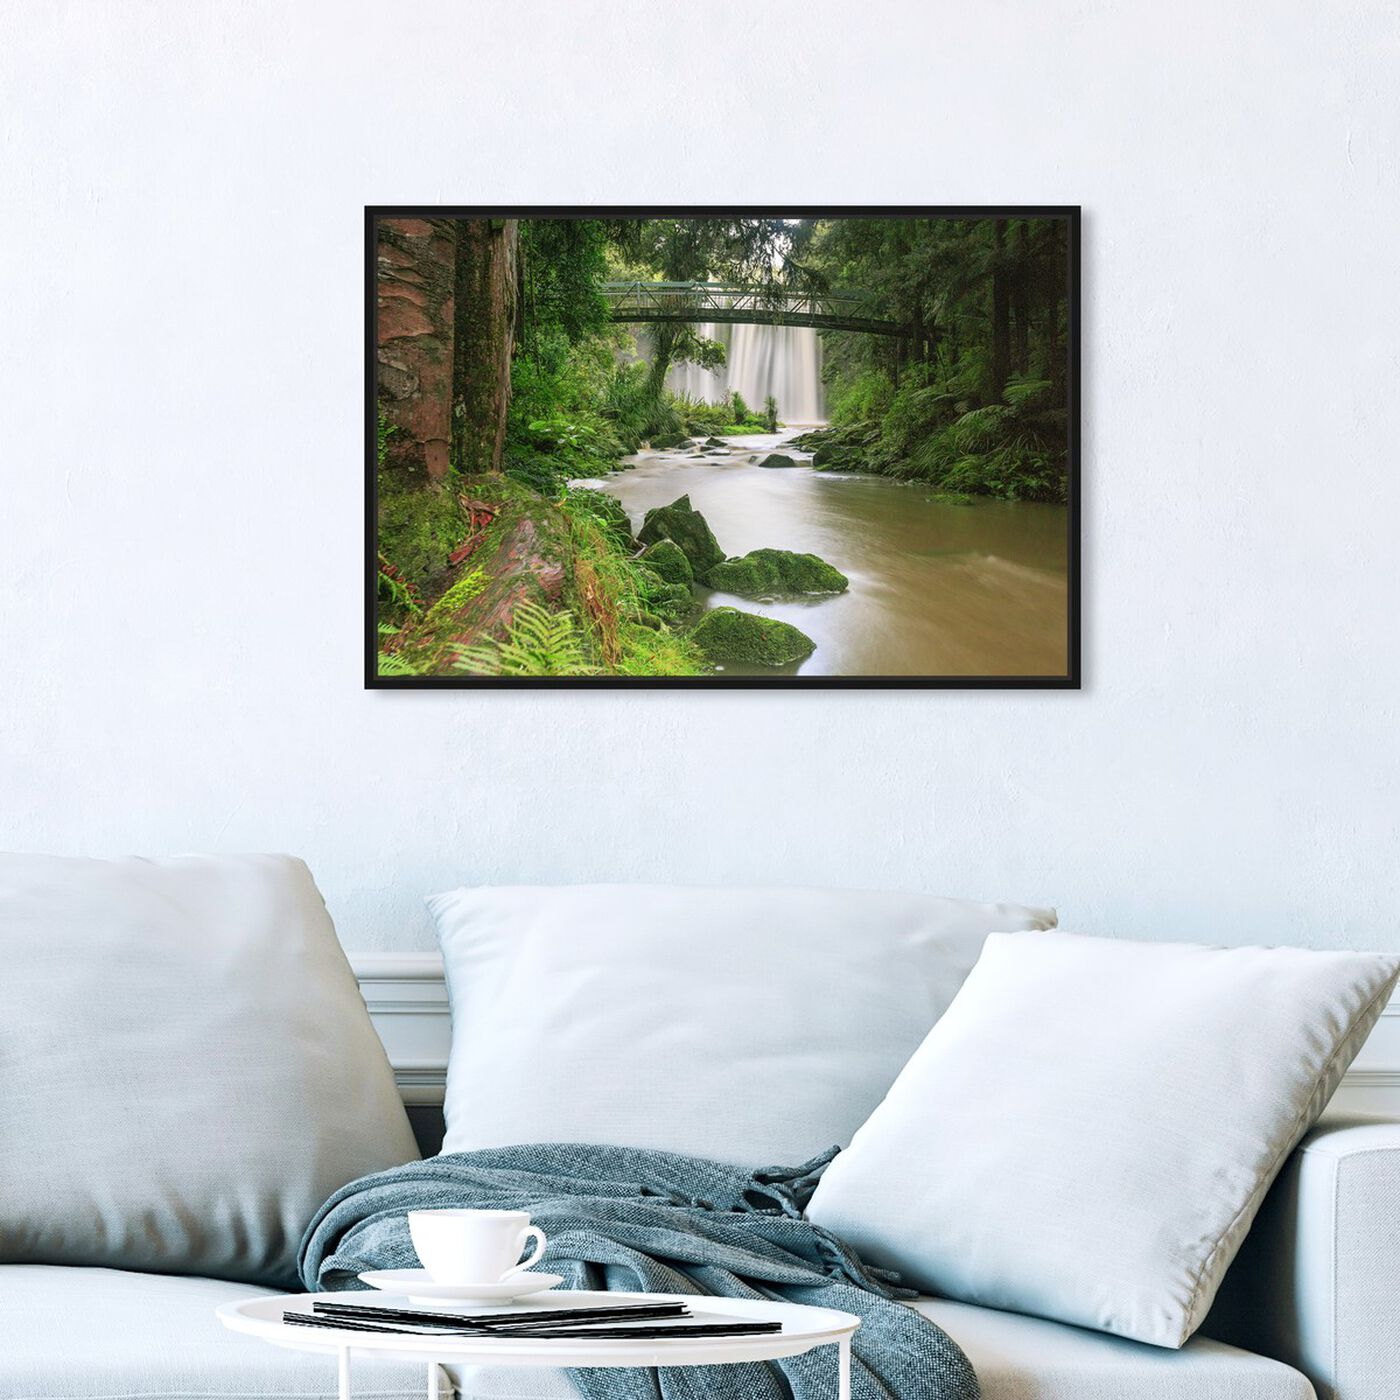 Hanging view of Curro Cardenal - Rainforest III featuring nature and landscape and nature art.